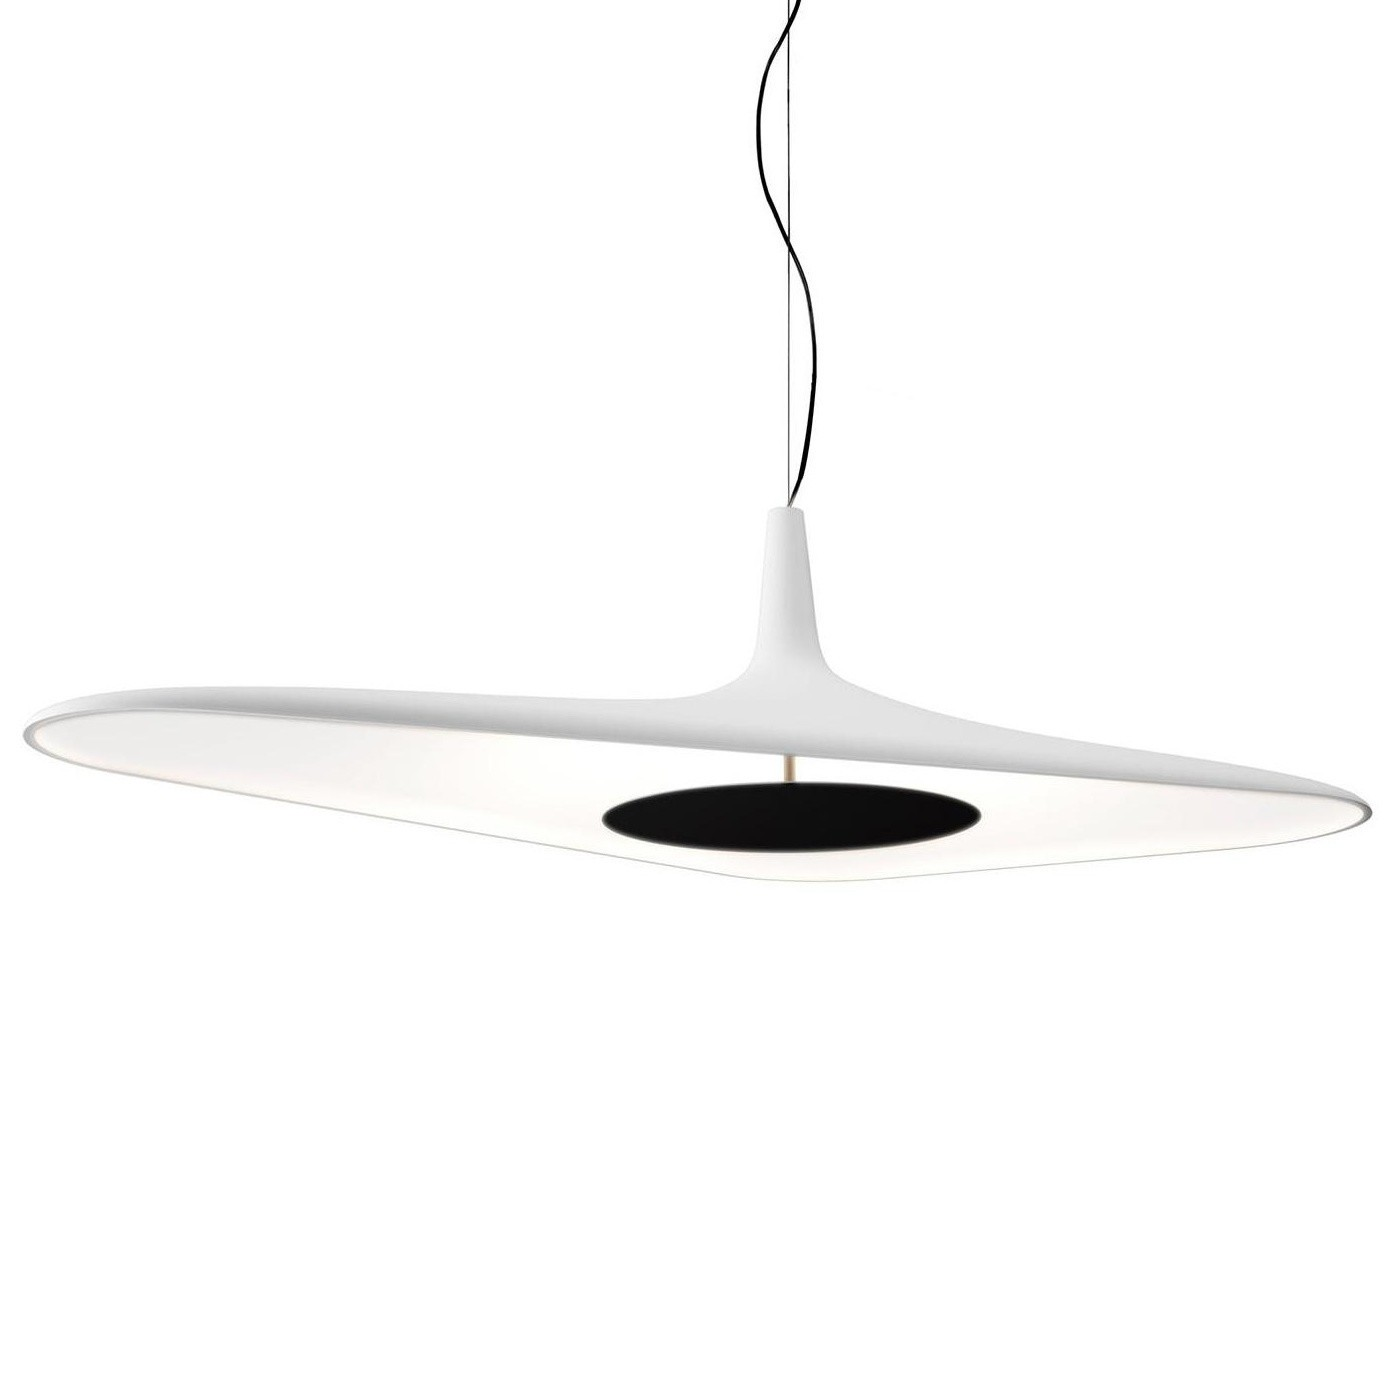 Suspension Noir Metal Soleil Noir D89 Led Suspension Lamp